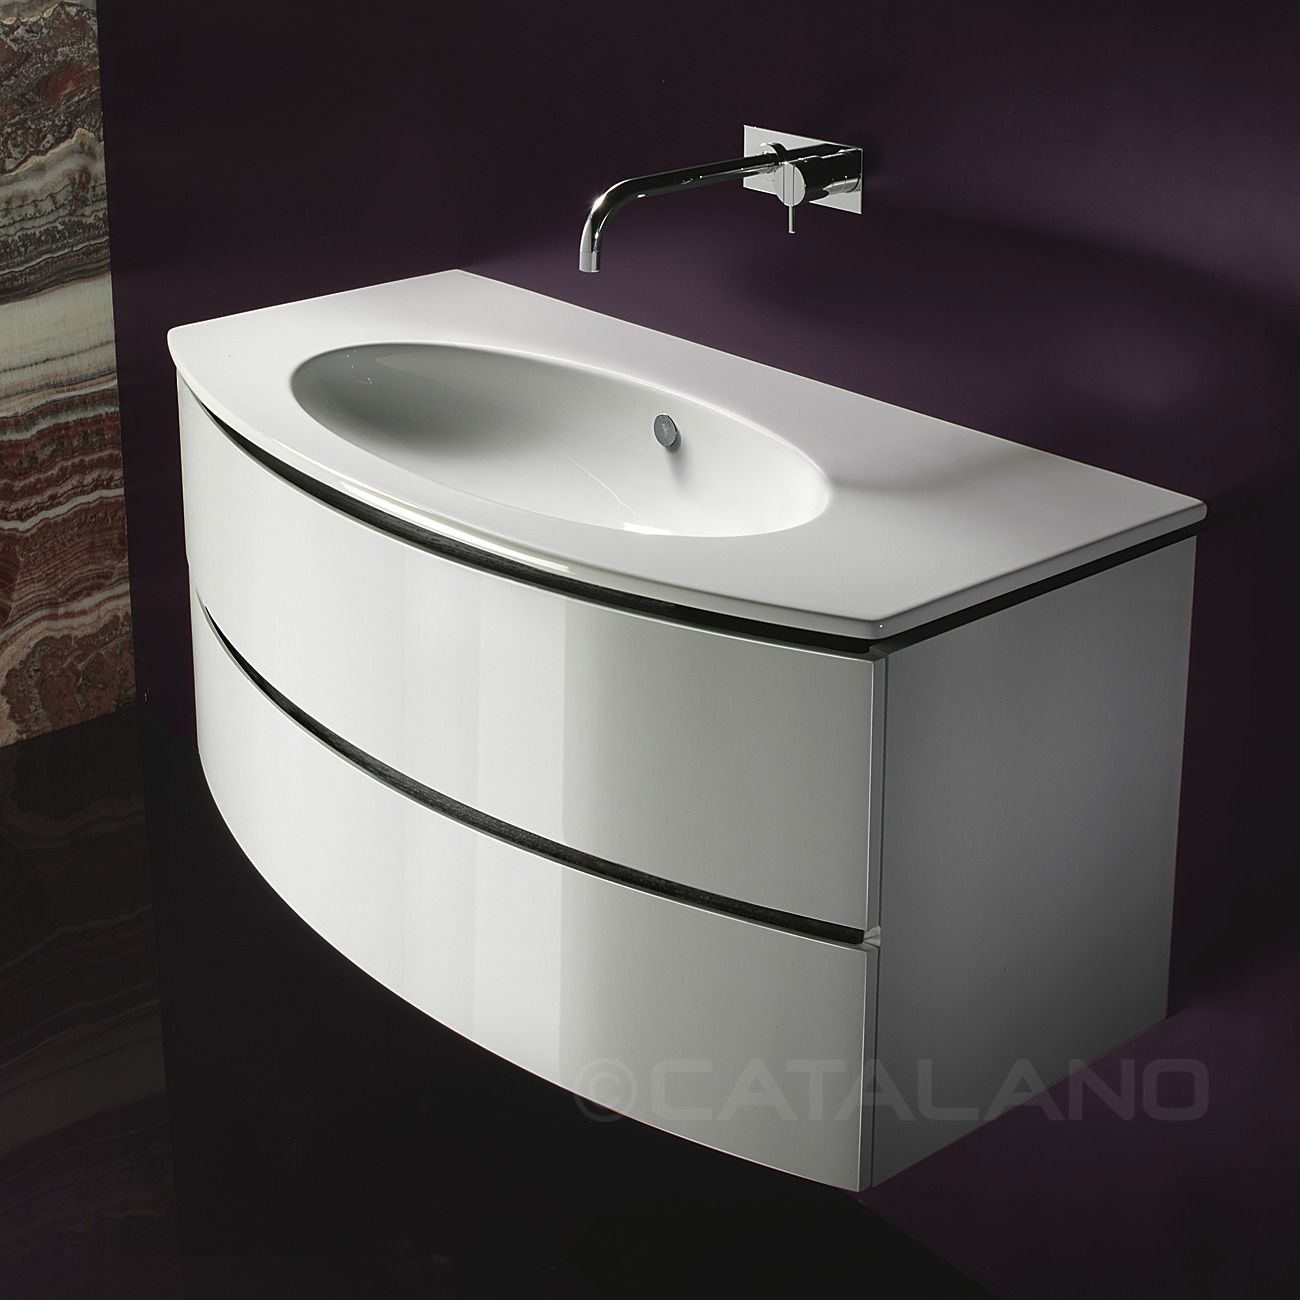 High Quality Velis 100 | Ceramica Catalano   The Essence Of Ceramics